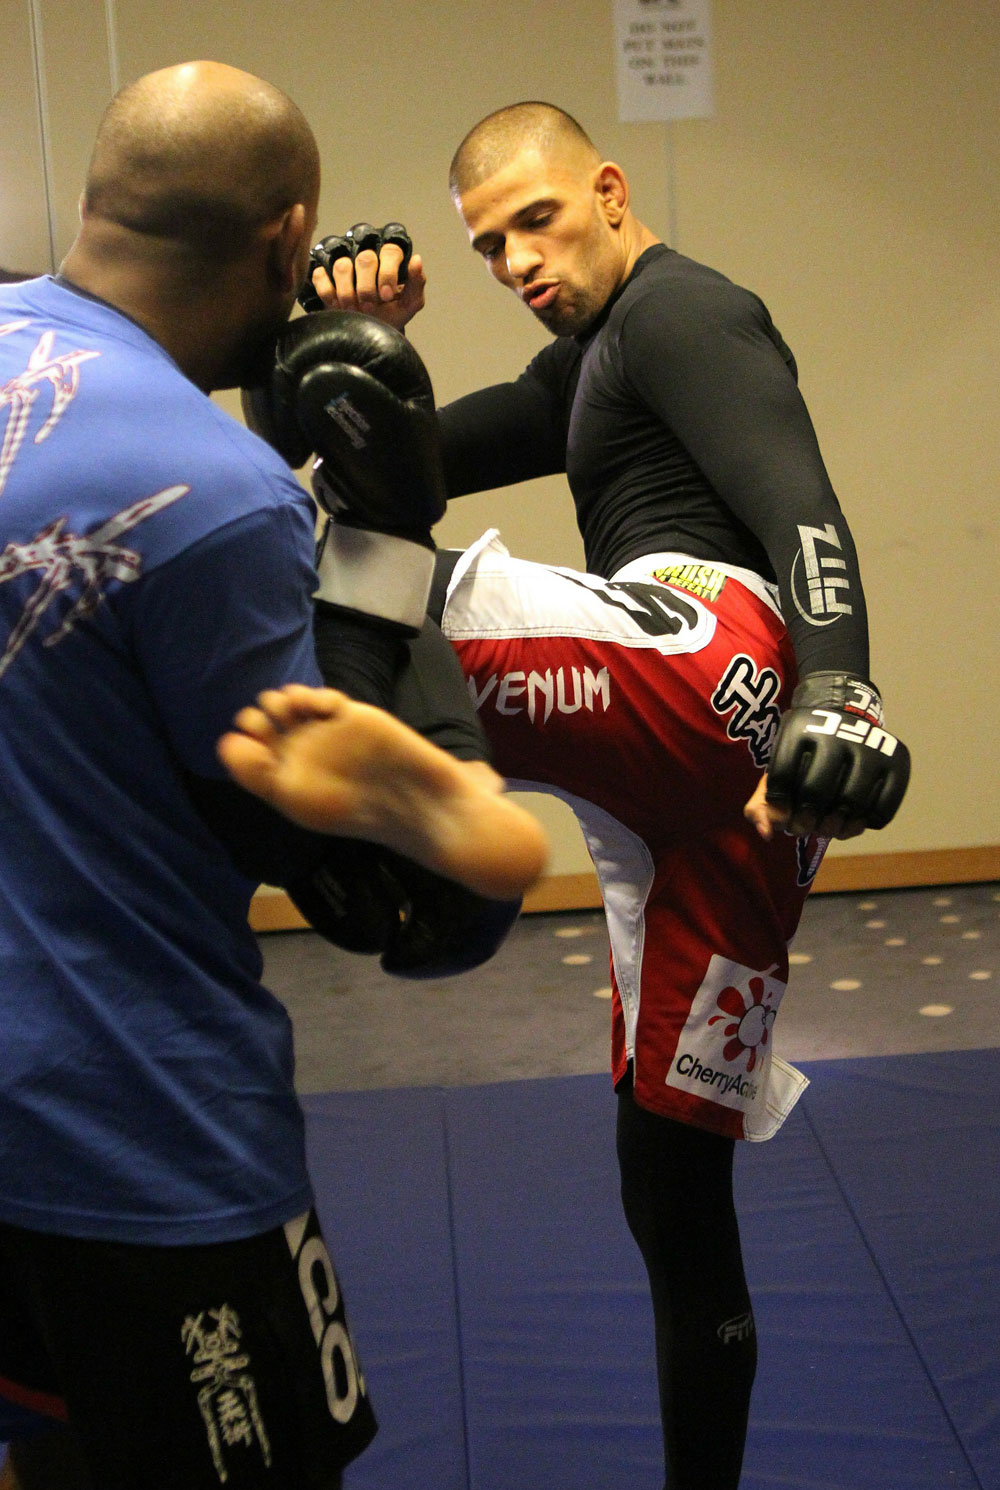 (R-L) Andre Winner works out with trainer Dean Amasinger at the UFC 122 open workouts at the Hilton Hotel on November 10,  2010 in Dusseldorf, Germany.  (Photo by Josh Hedges/Zuffa LLC via Getty Images)